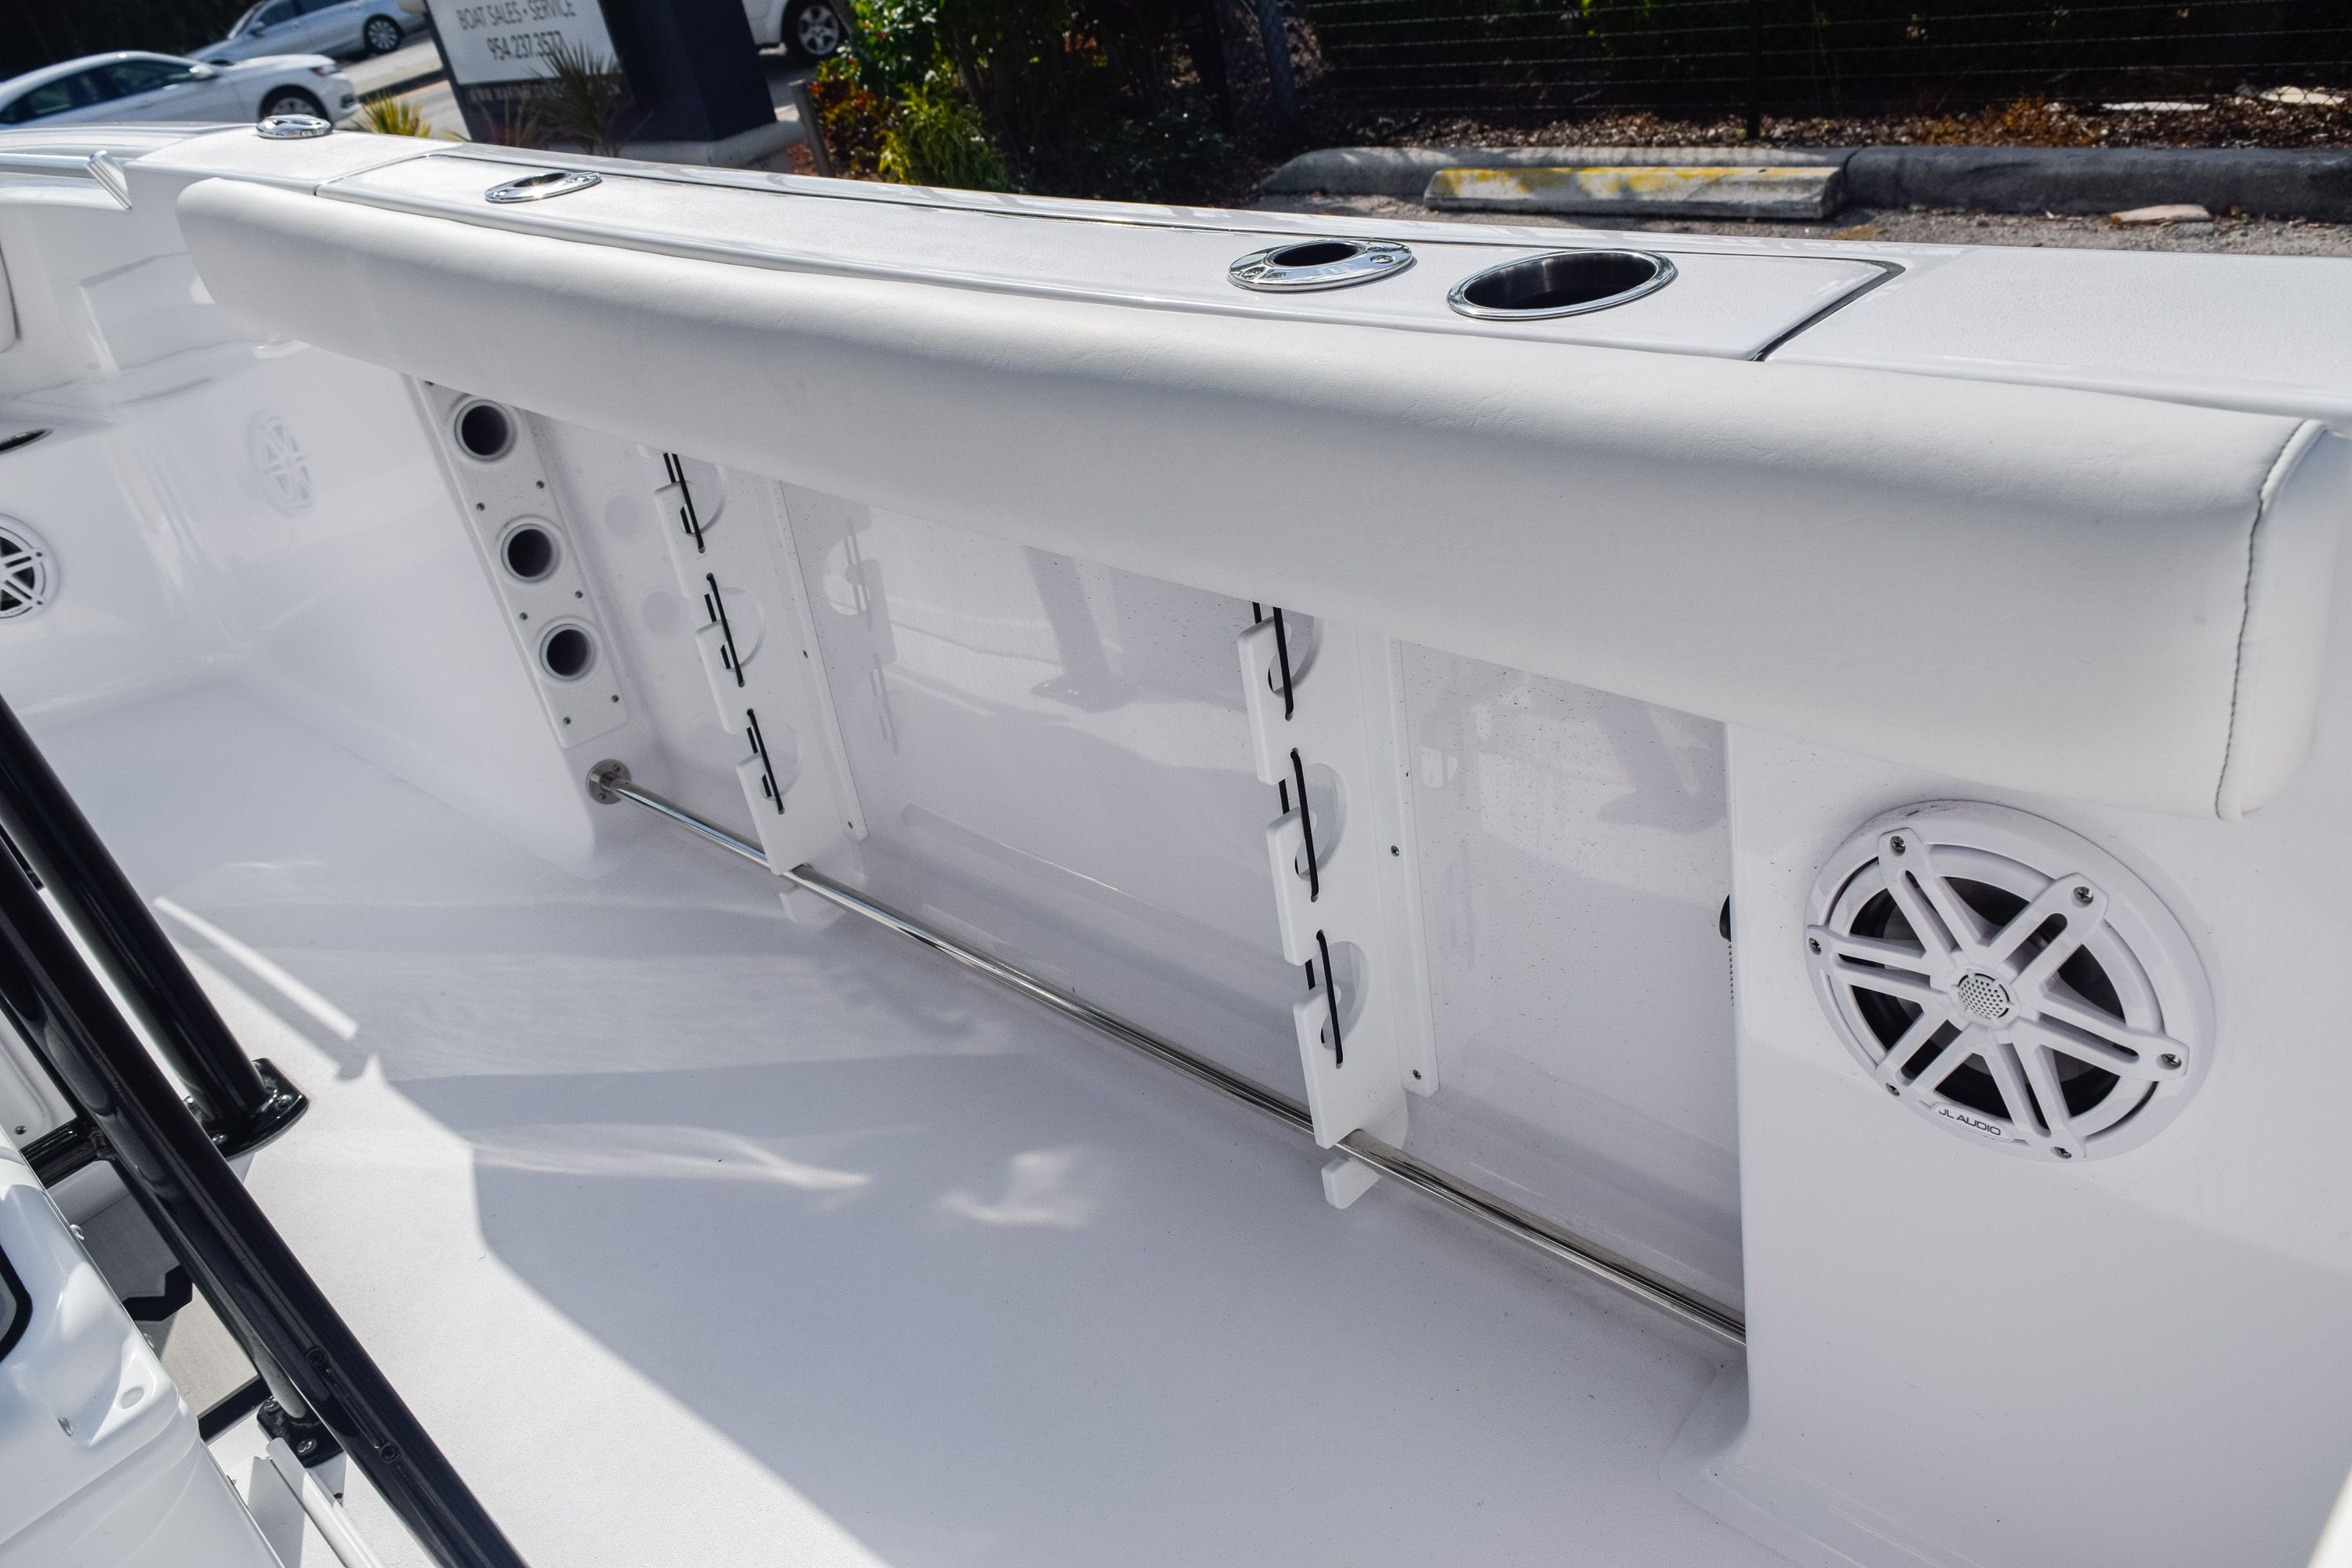 Thumbnail 14 for New 2020 Sportsman Open 232 Center Console boat for sale in Fort Lauderdale, FL